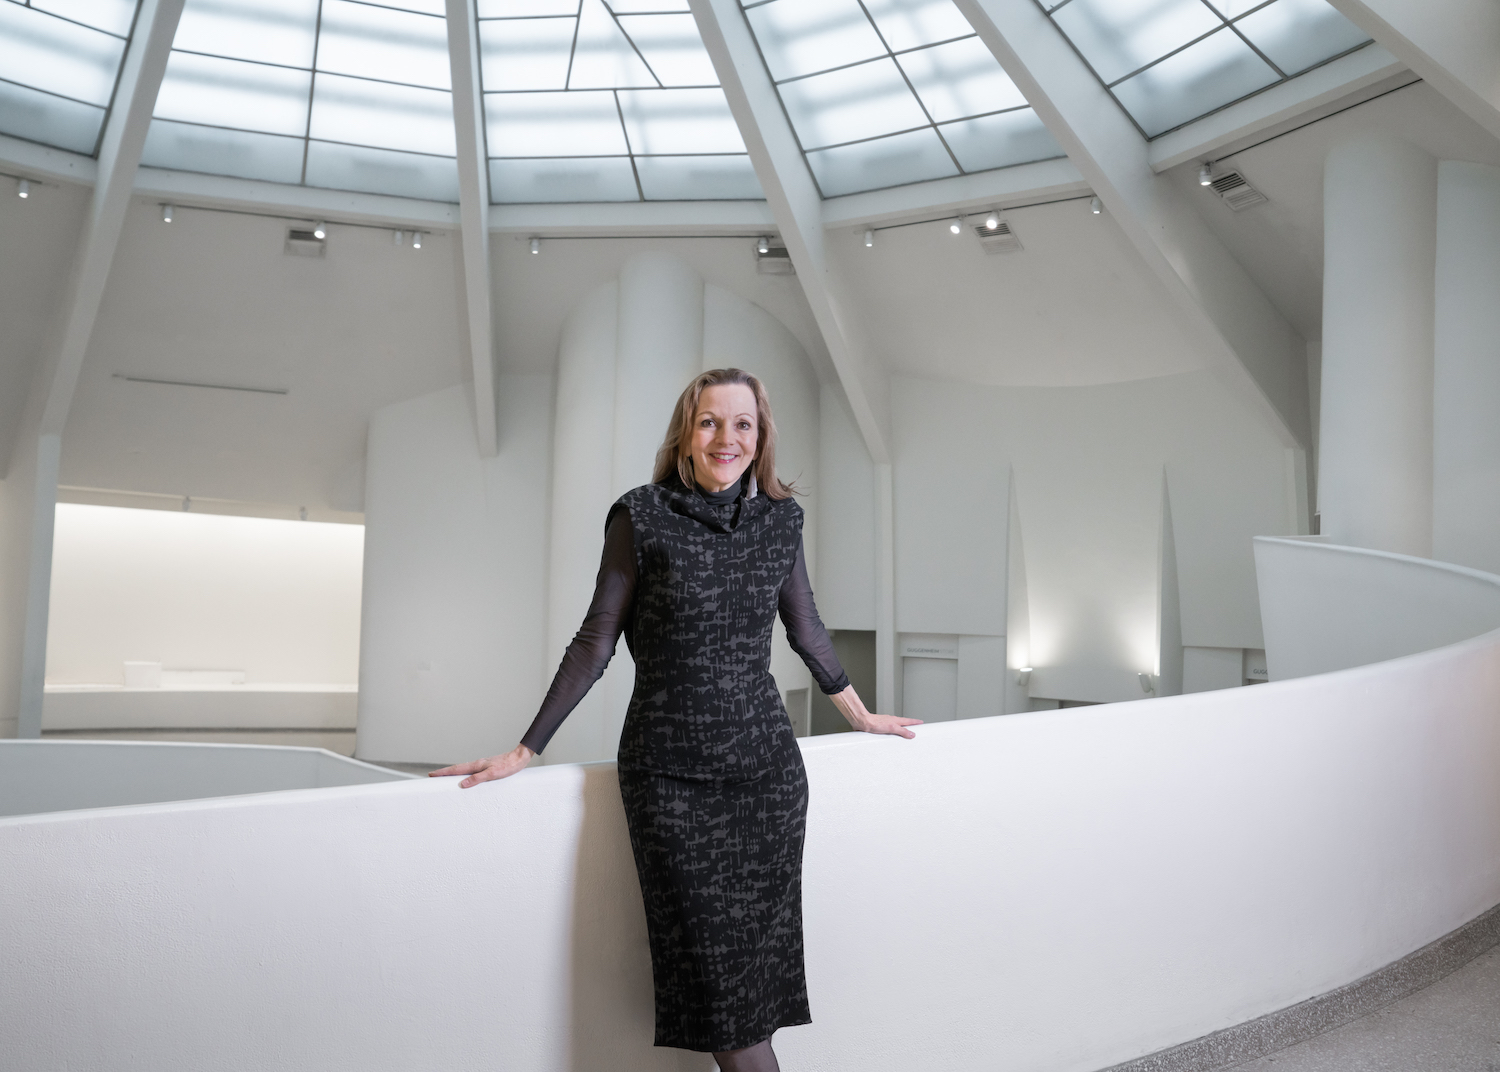 Alexandra Munroe, PhD, Senior Curator and Senior Advisor, Solomon R. Guggenheim Museum. Photo by: David Heald